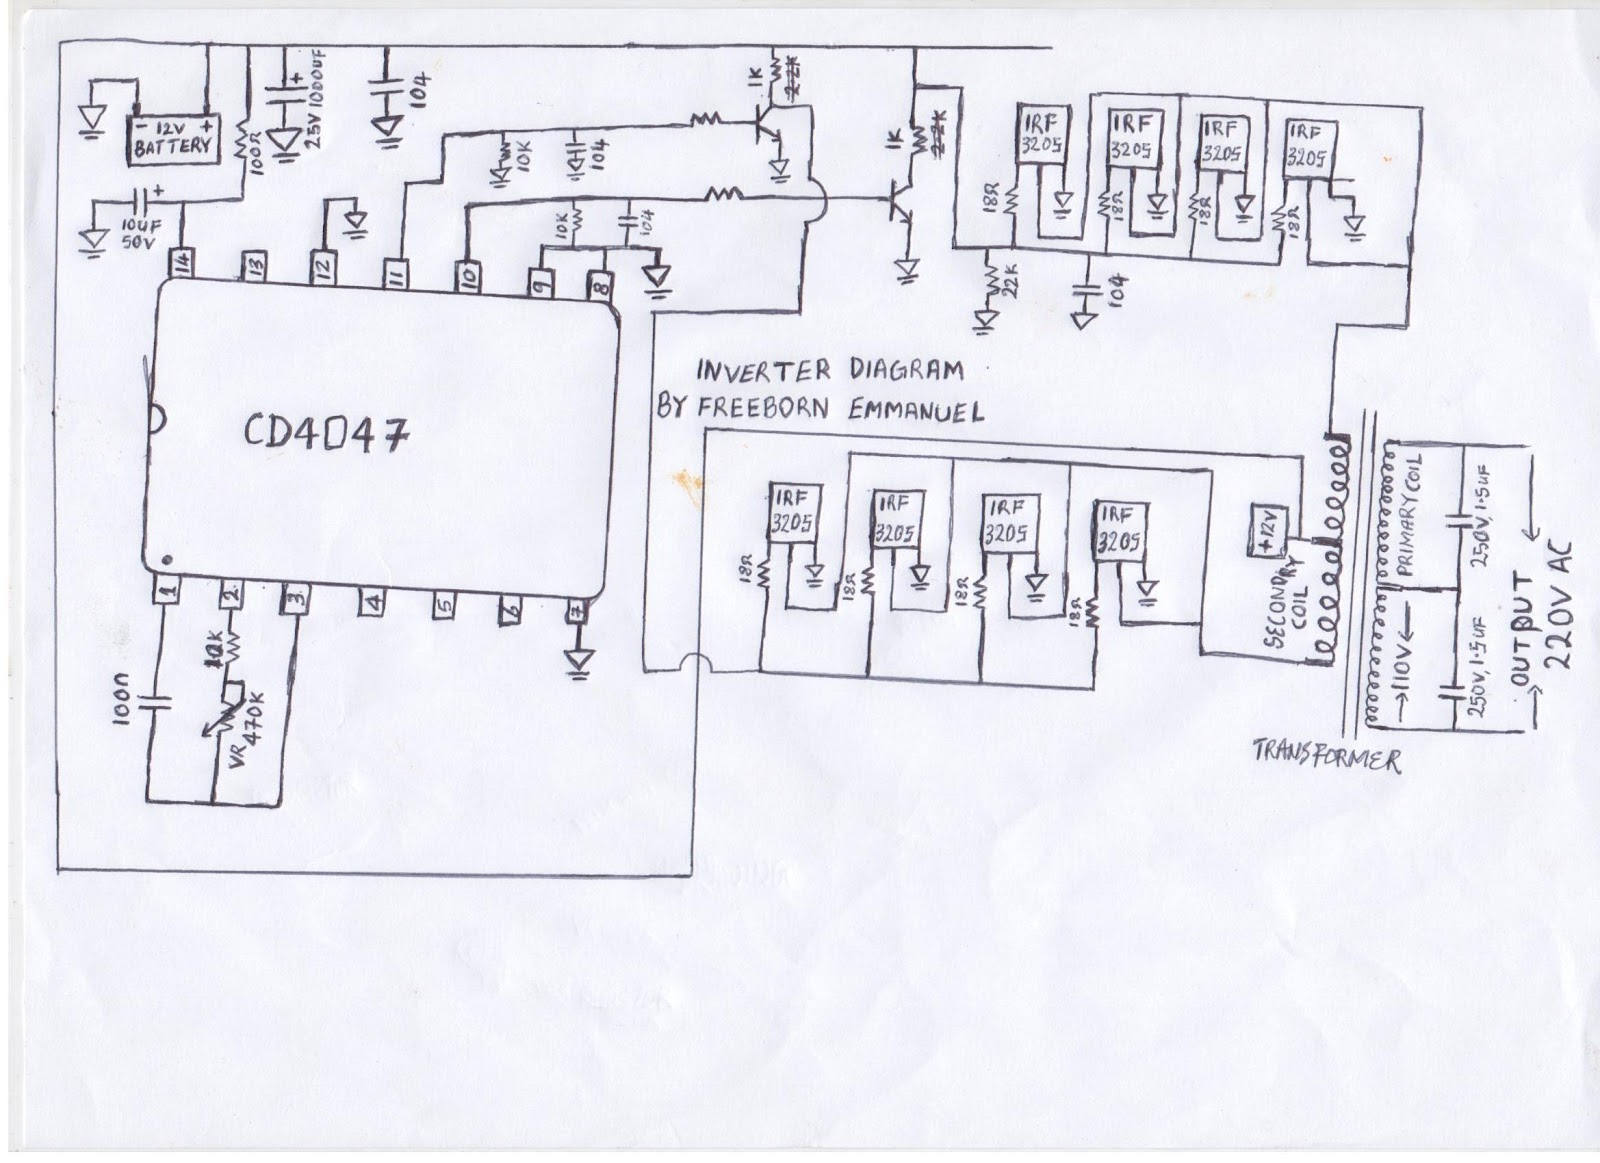 how to build an inverter: 1000 watts inverter circuit diagram